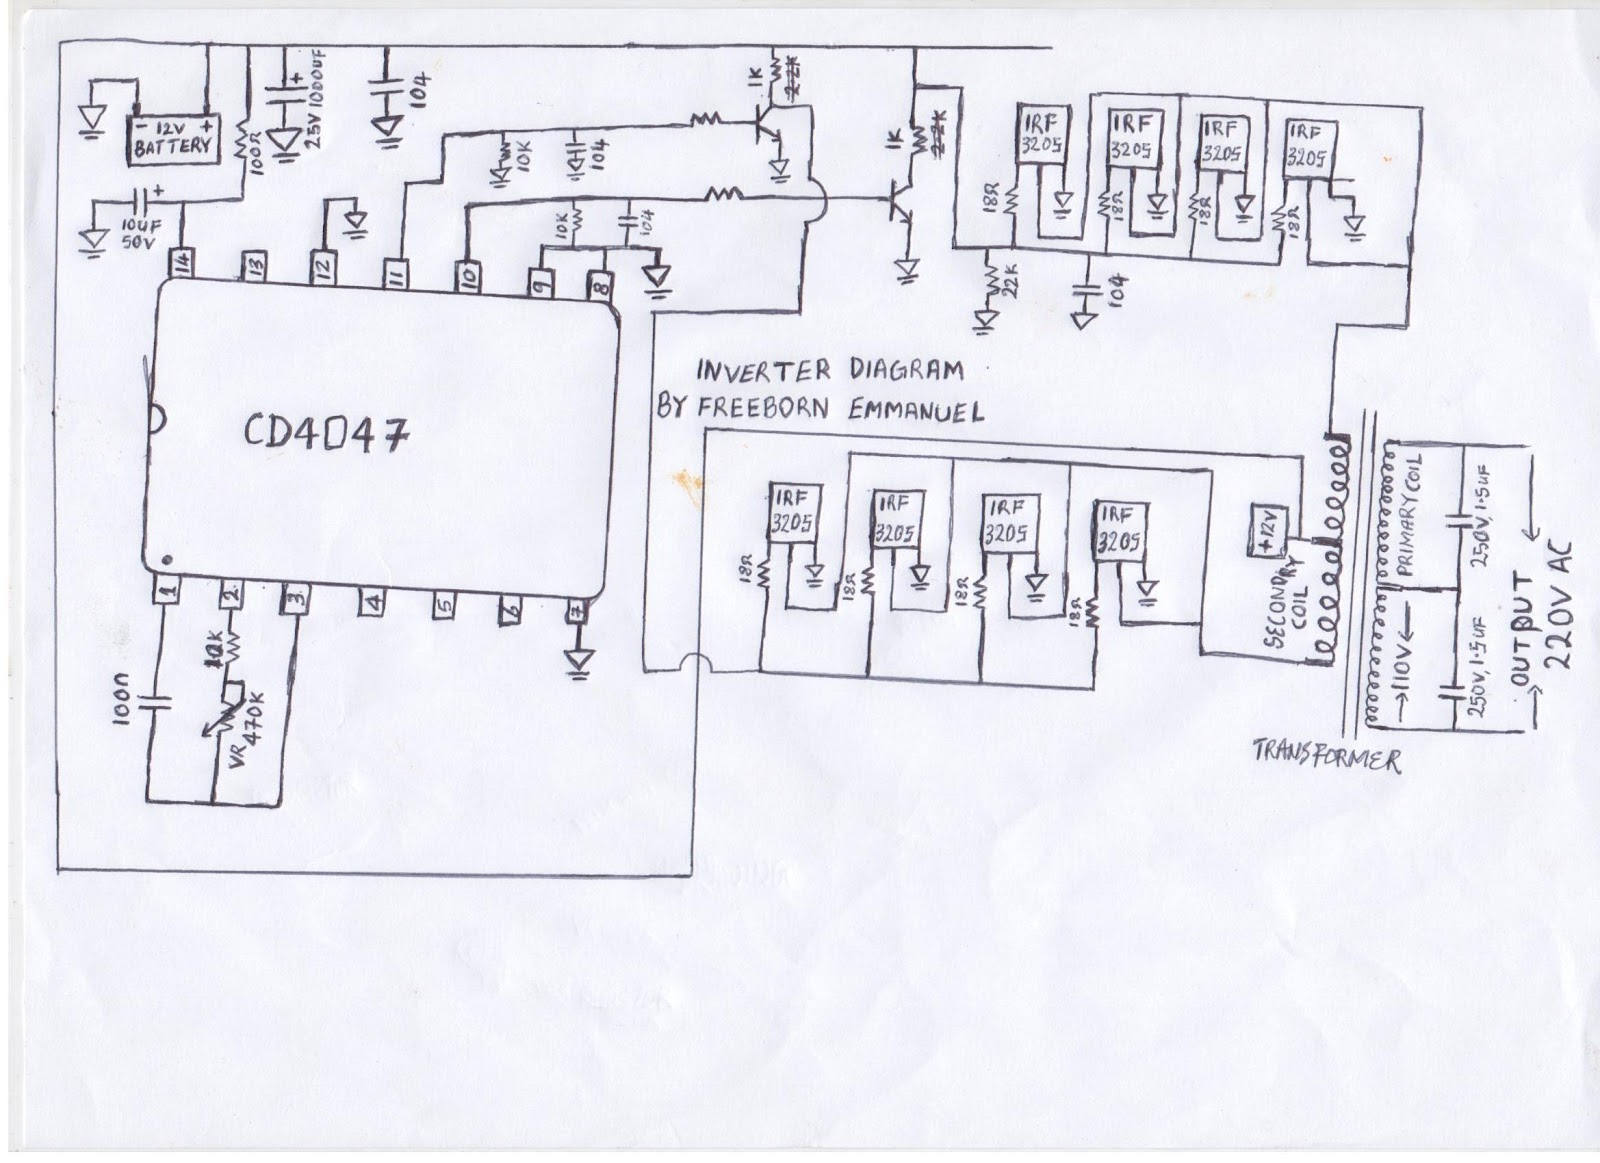 how to build an inverter: 1000 watts inverter circuit diagram